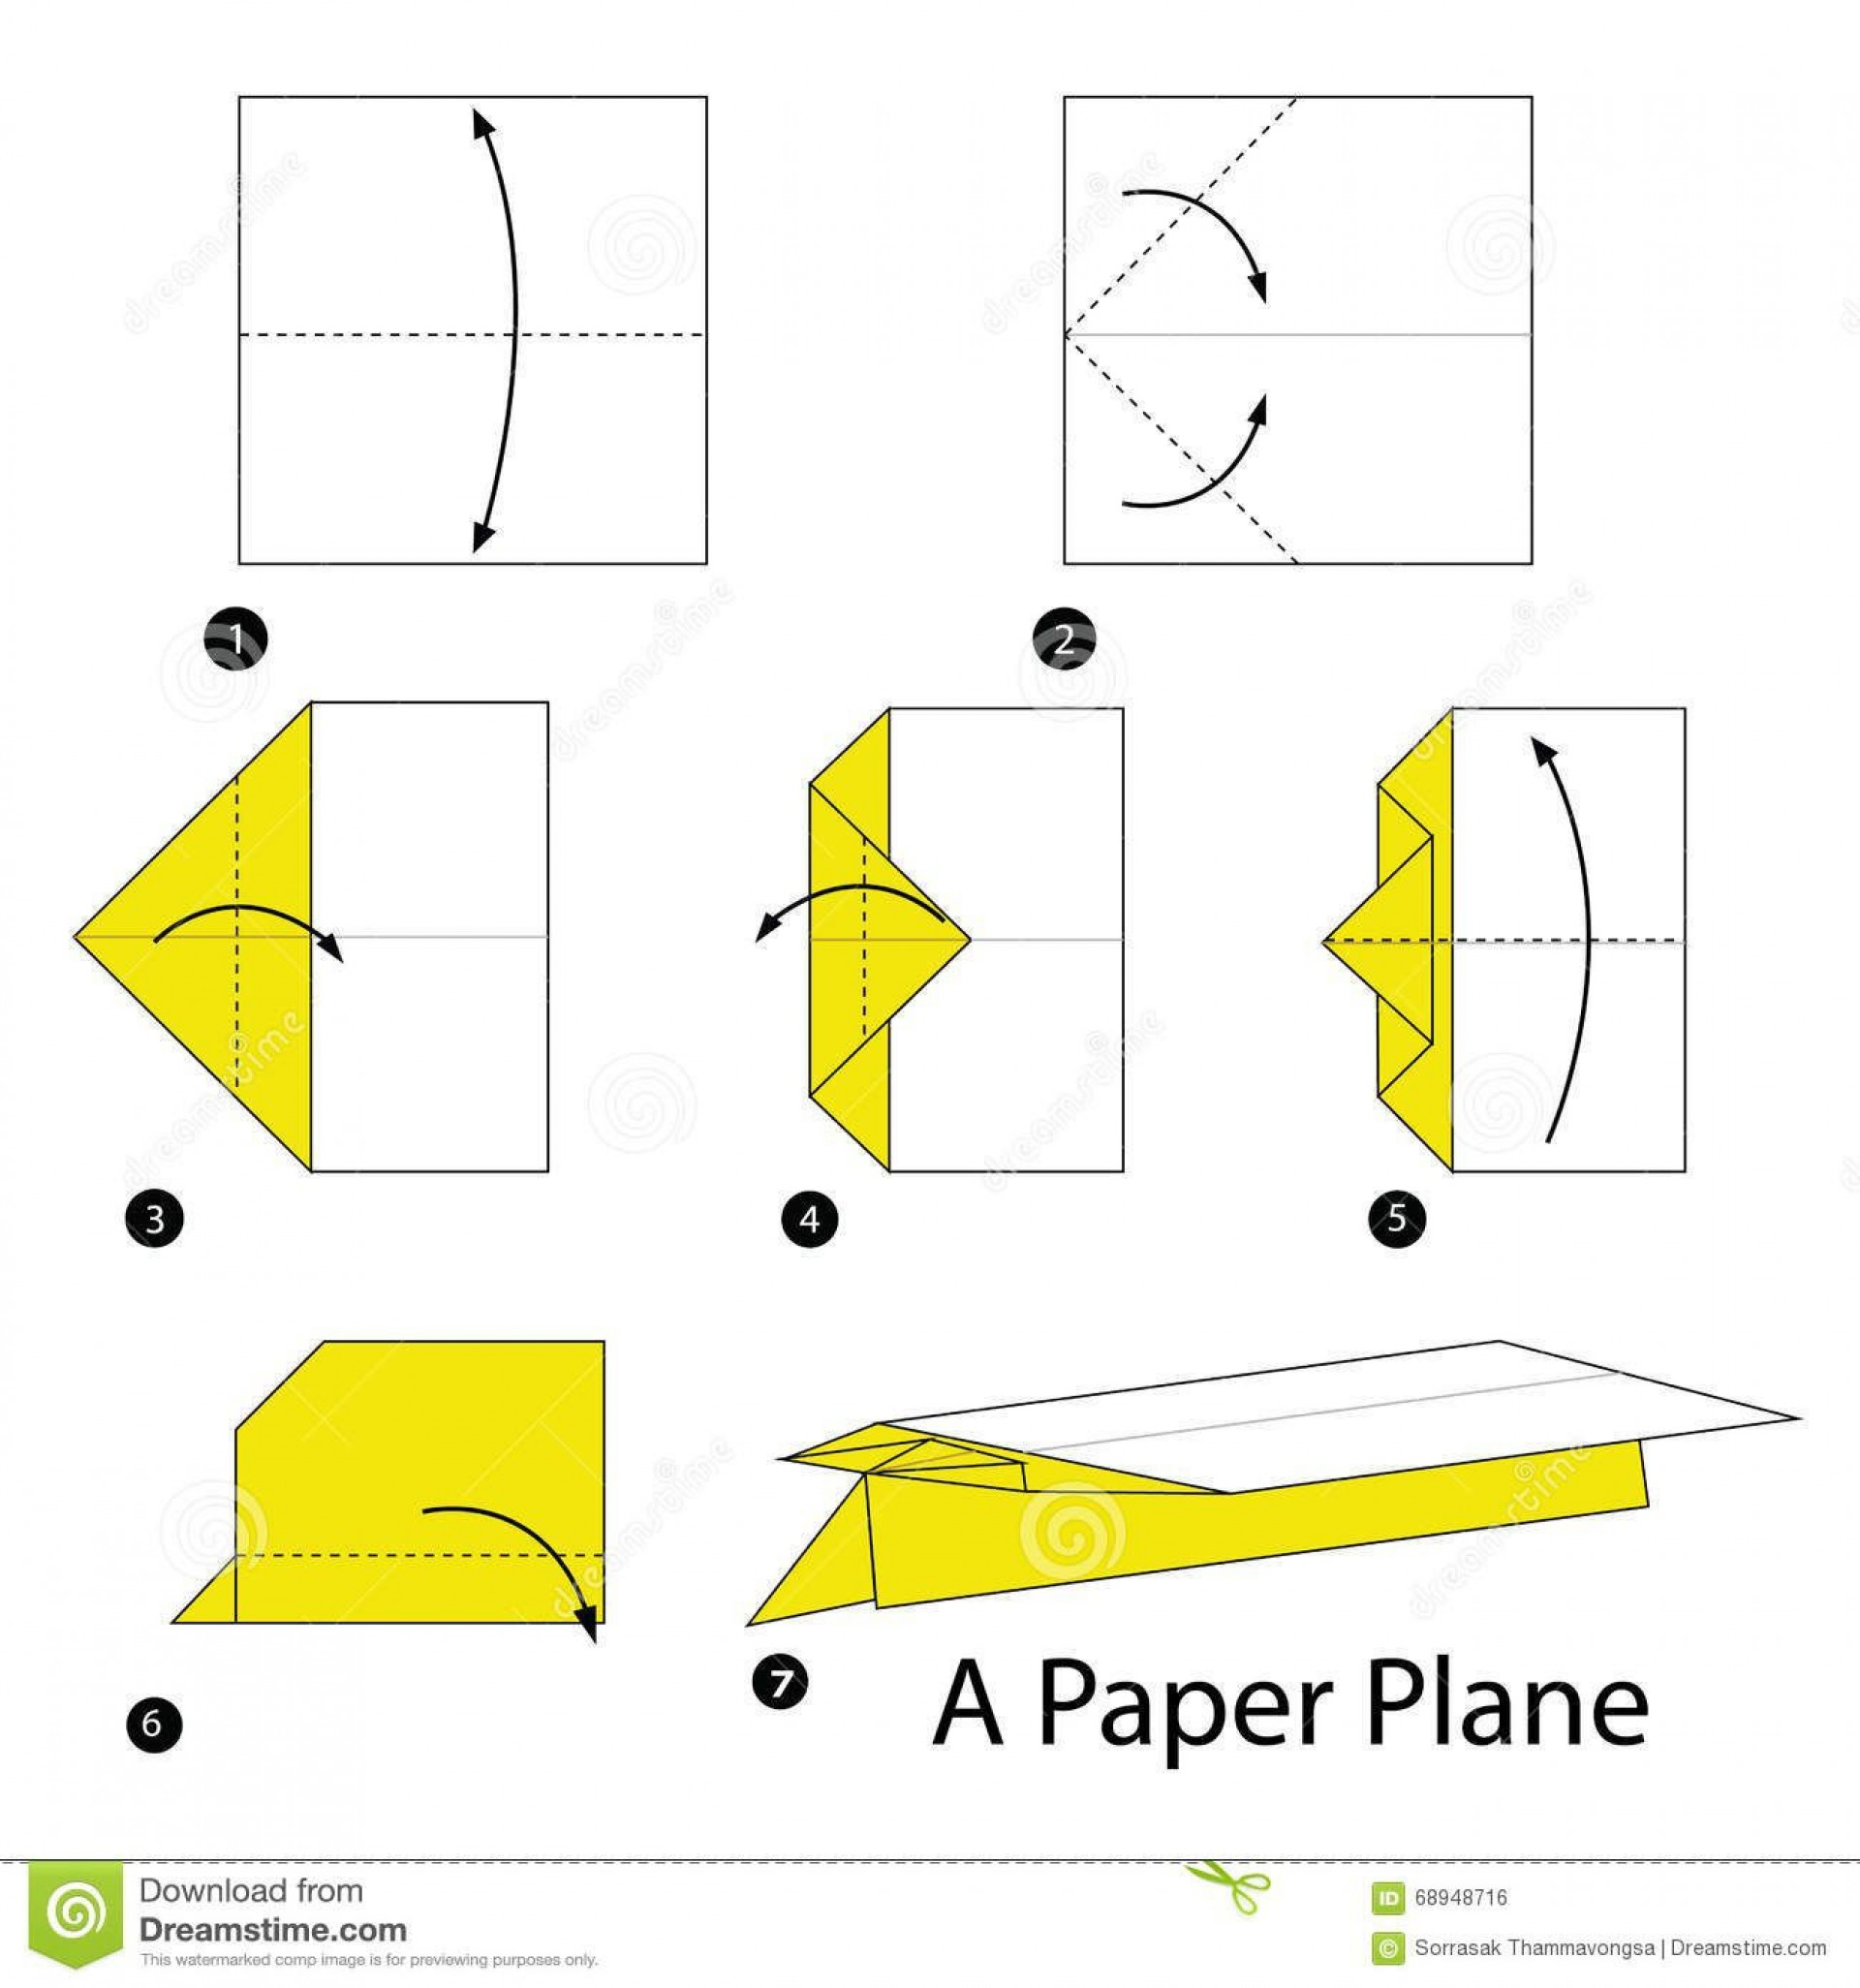 007 Top Printable Paper Plane Plan Picture  Plans Airplane Free Design Instruction1920